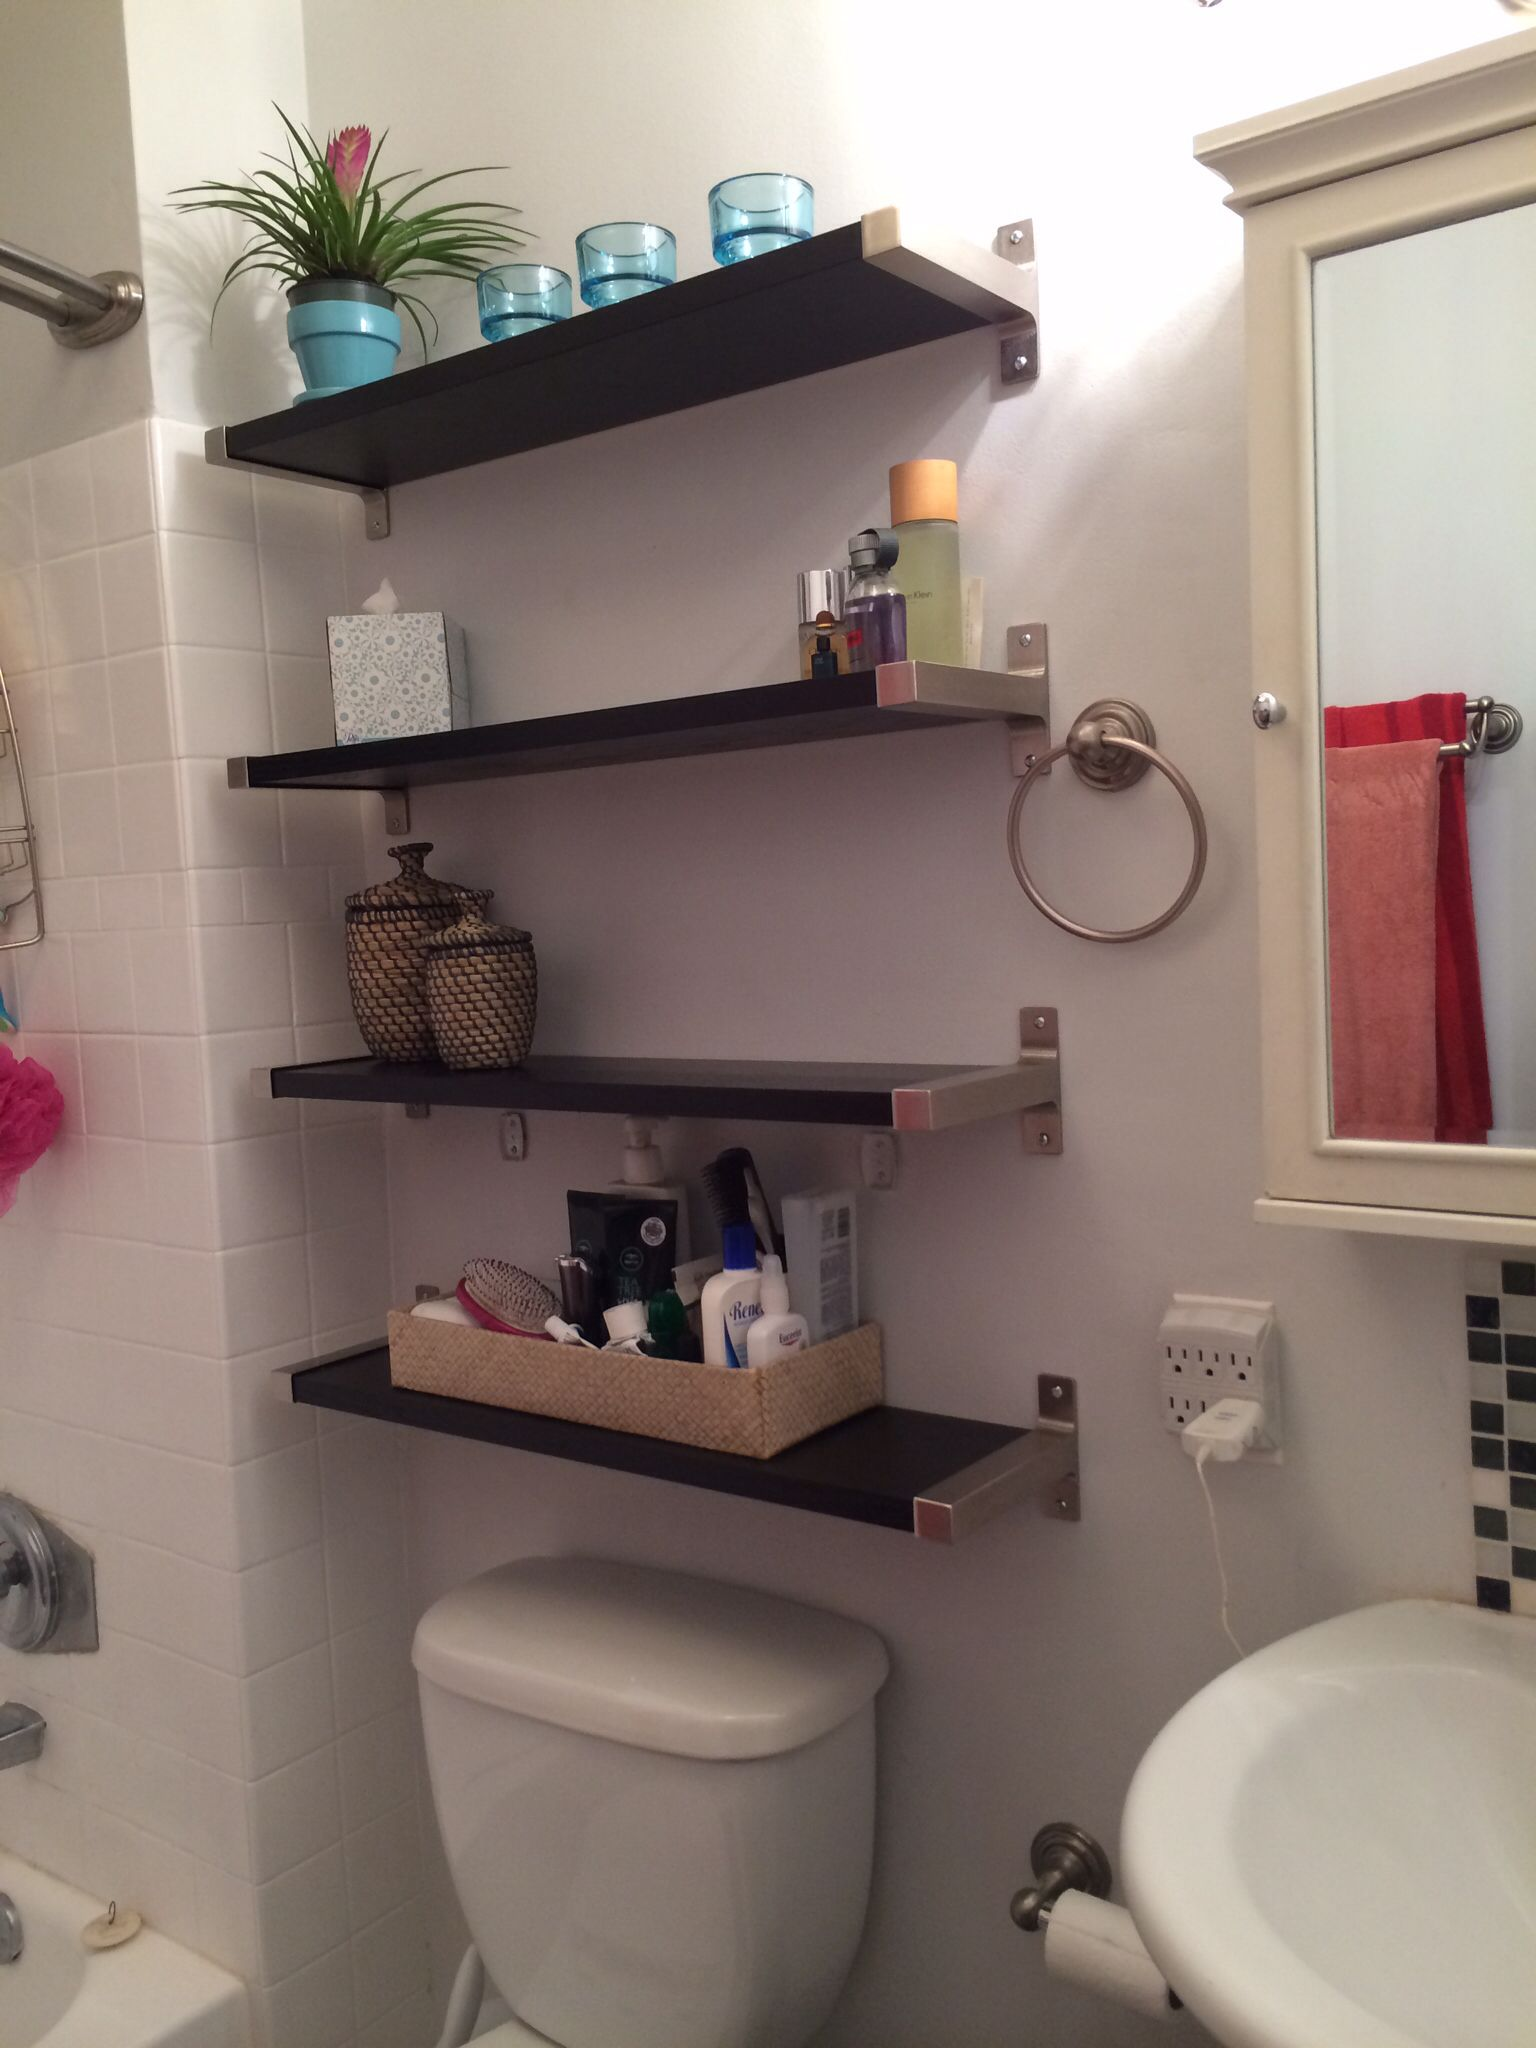 Small bathroom solutions Ikea shelves Bathroom shelf